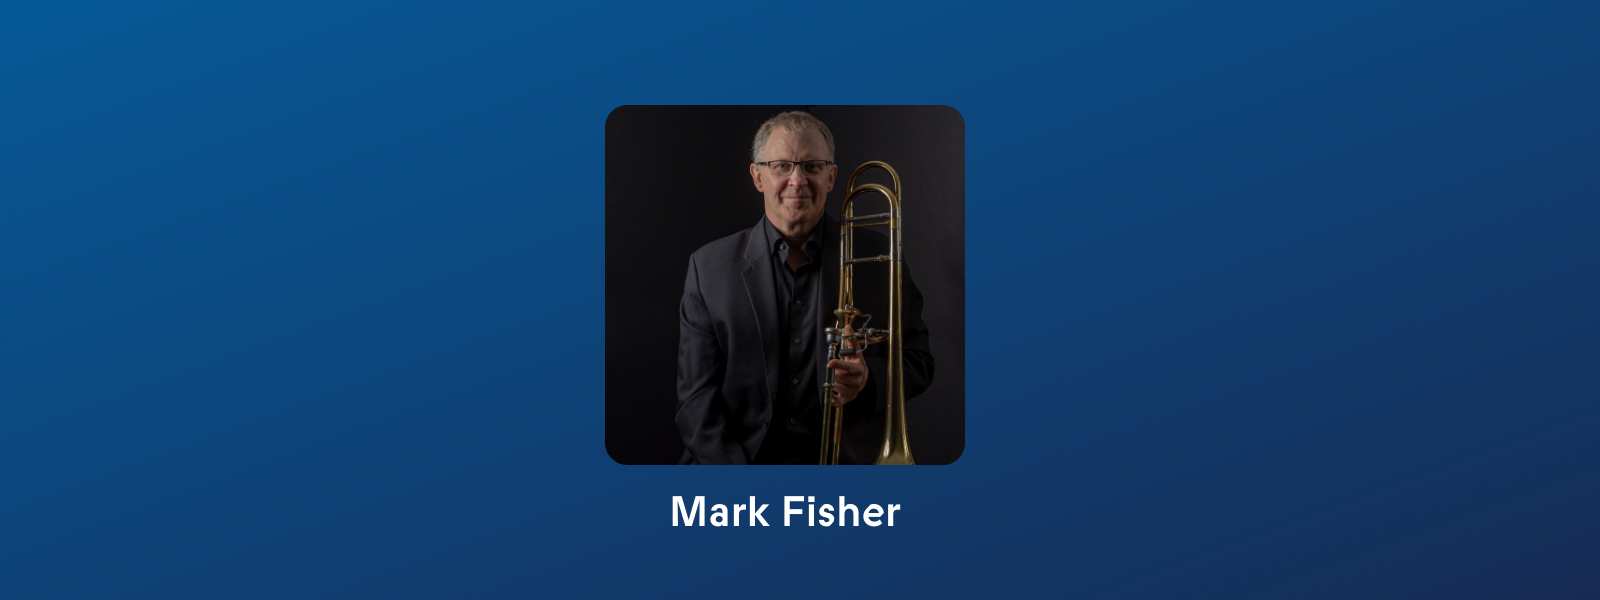 Mark Fisher